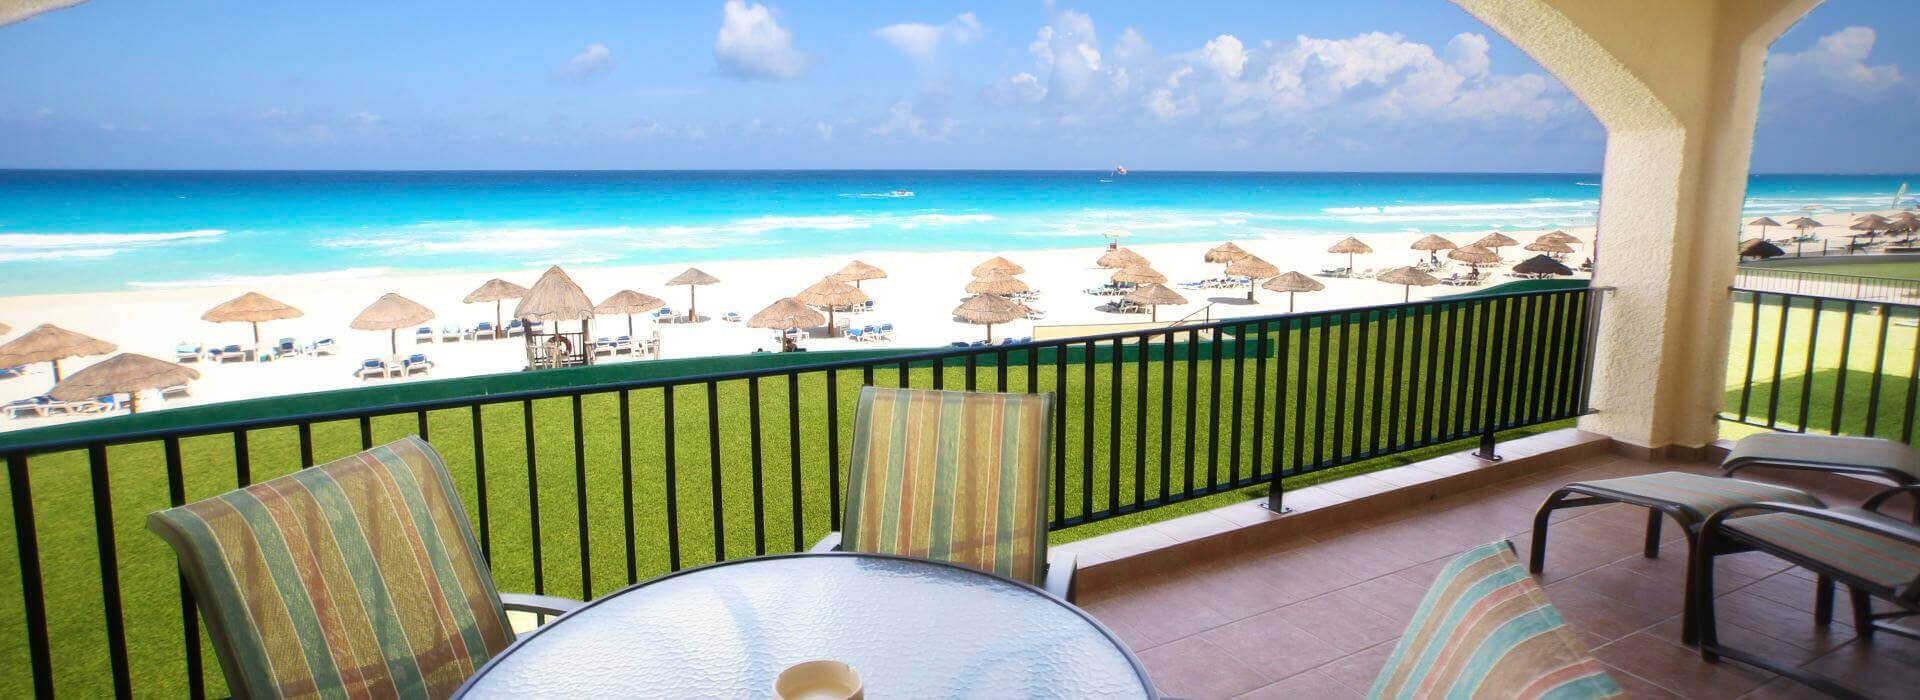 Beachfront balcony in a Cancun Resort